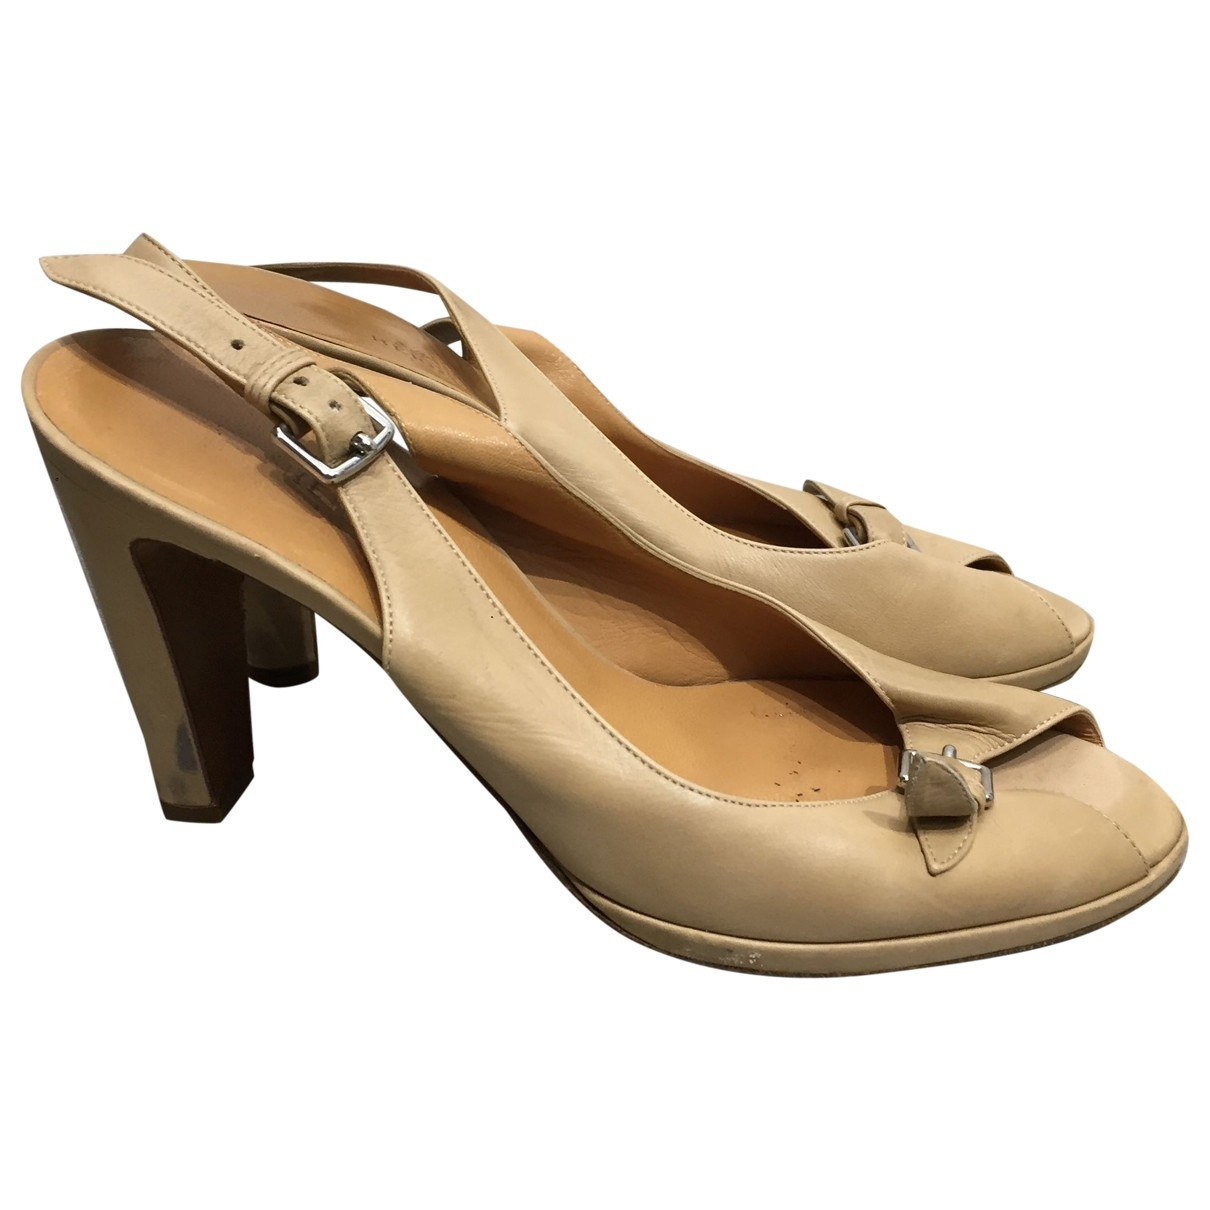 Hermès \N Beige Leather Sandals for Women 37.5 EU